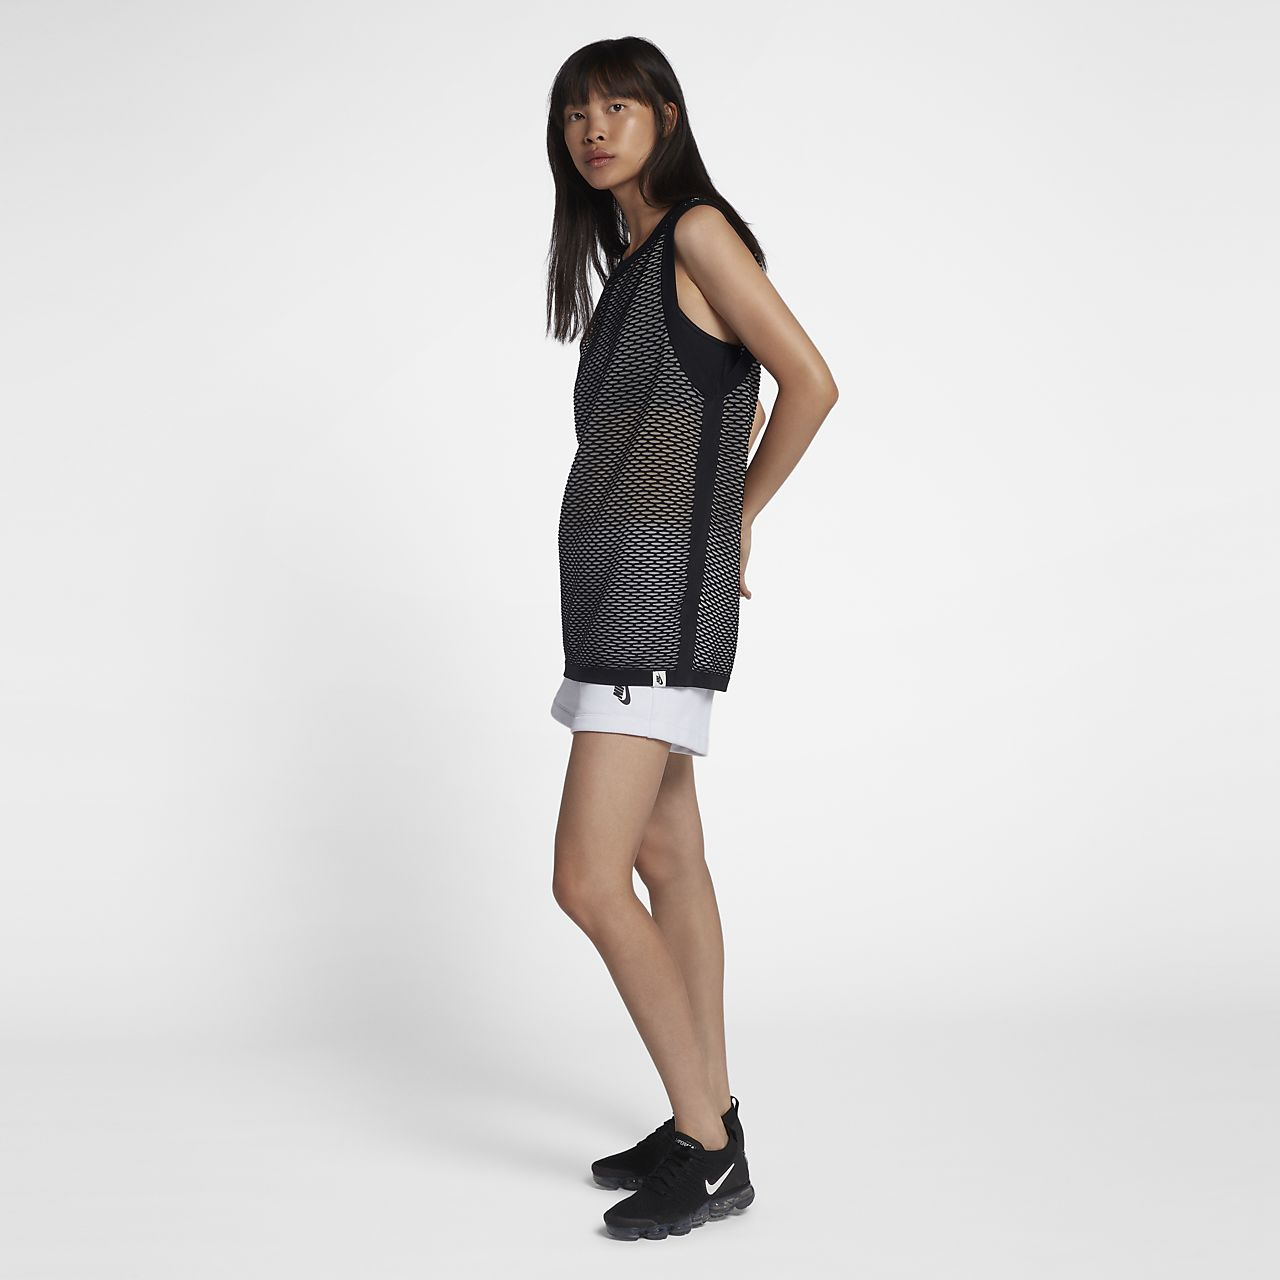 63bb3e05aa0a0 NikeLab Collection Women s Knit Basketball Tank Top. Nike.com